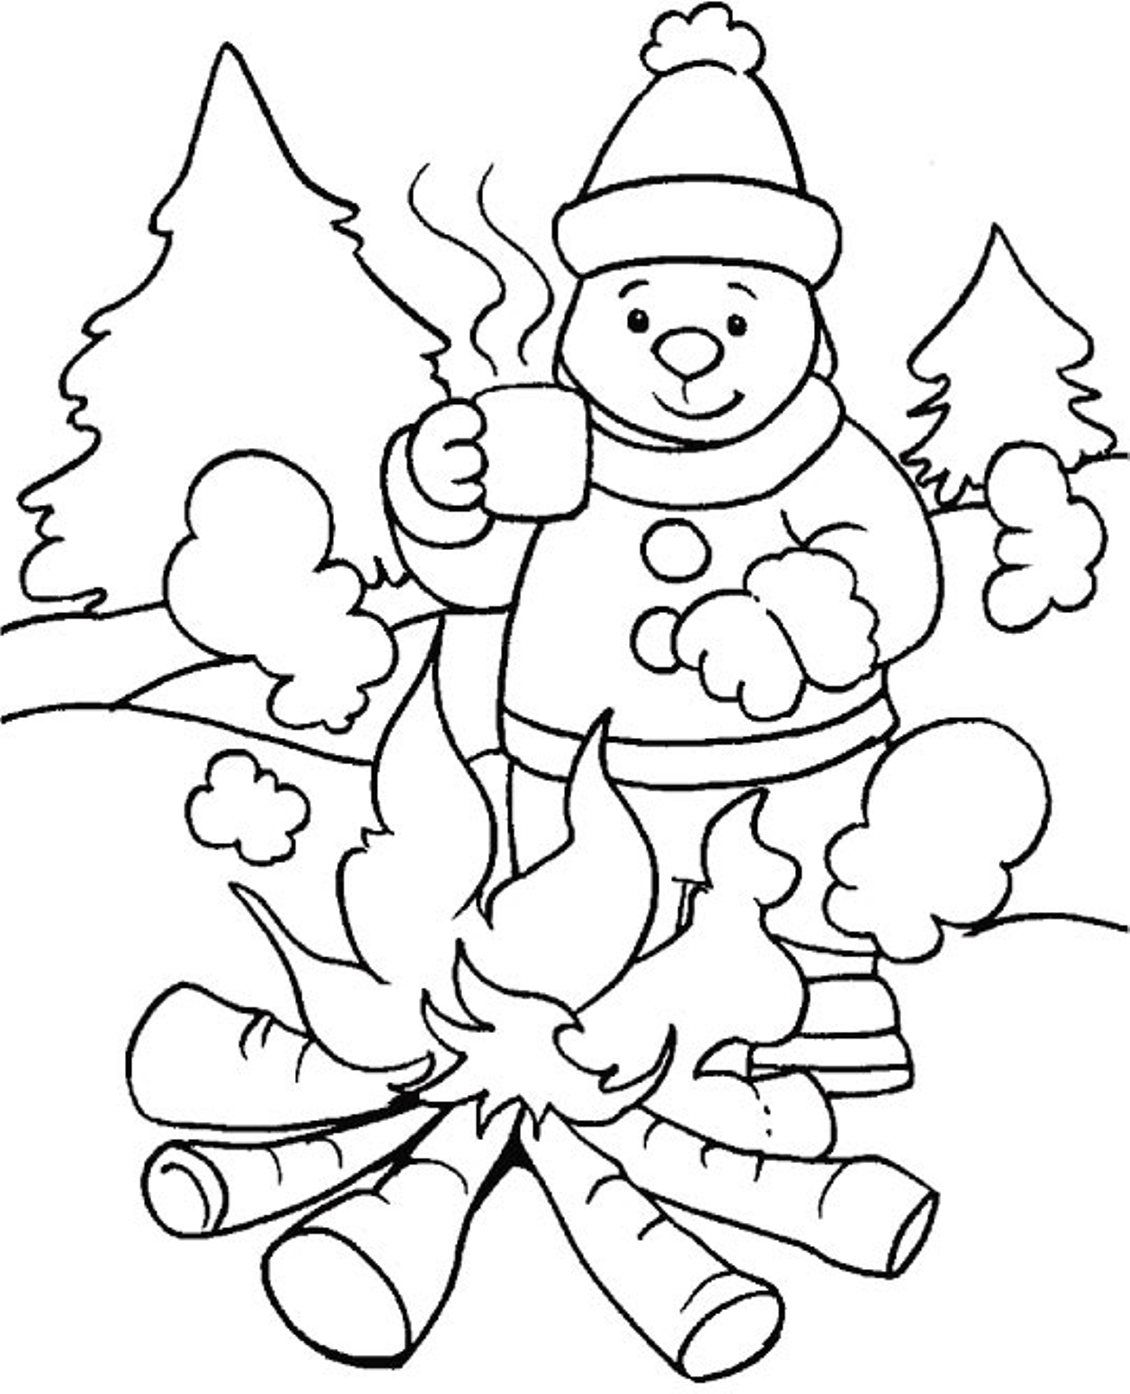 Coloring Pages Free Winter Coloring Pages For Kindergarten winter coloring pages for kindergarten az uniquecoloringpages